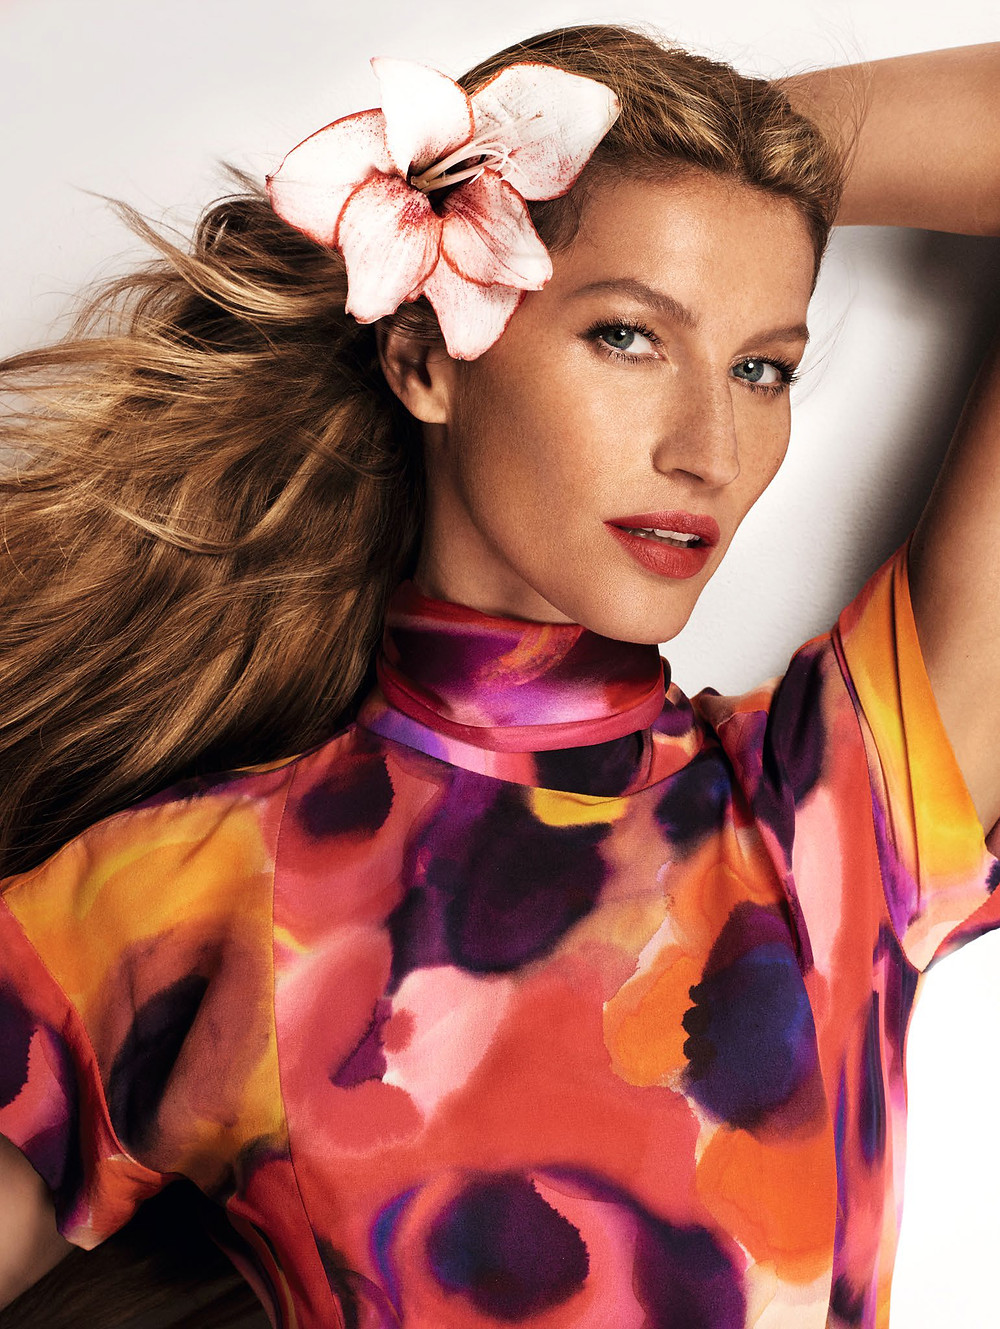 gisele-bc3bcndchen-by-mario-testino-for-vogue-china-march-2015